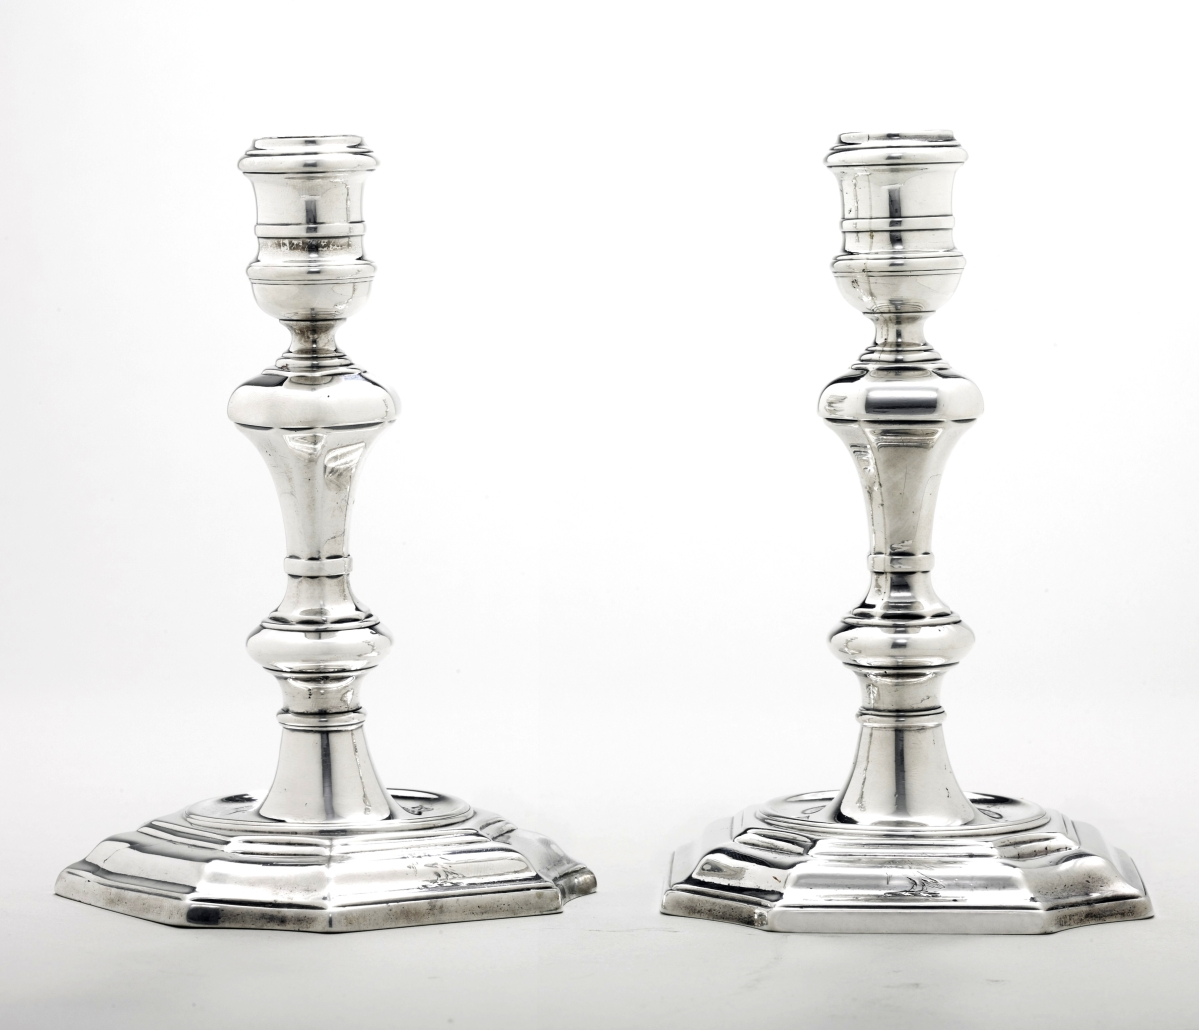 American silver at Christie's on January 20 includes, from the Wunsch collection, this rare pair of circa 1750 candlesticks by New York silversmith Simeon Soumaine.